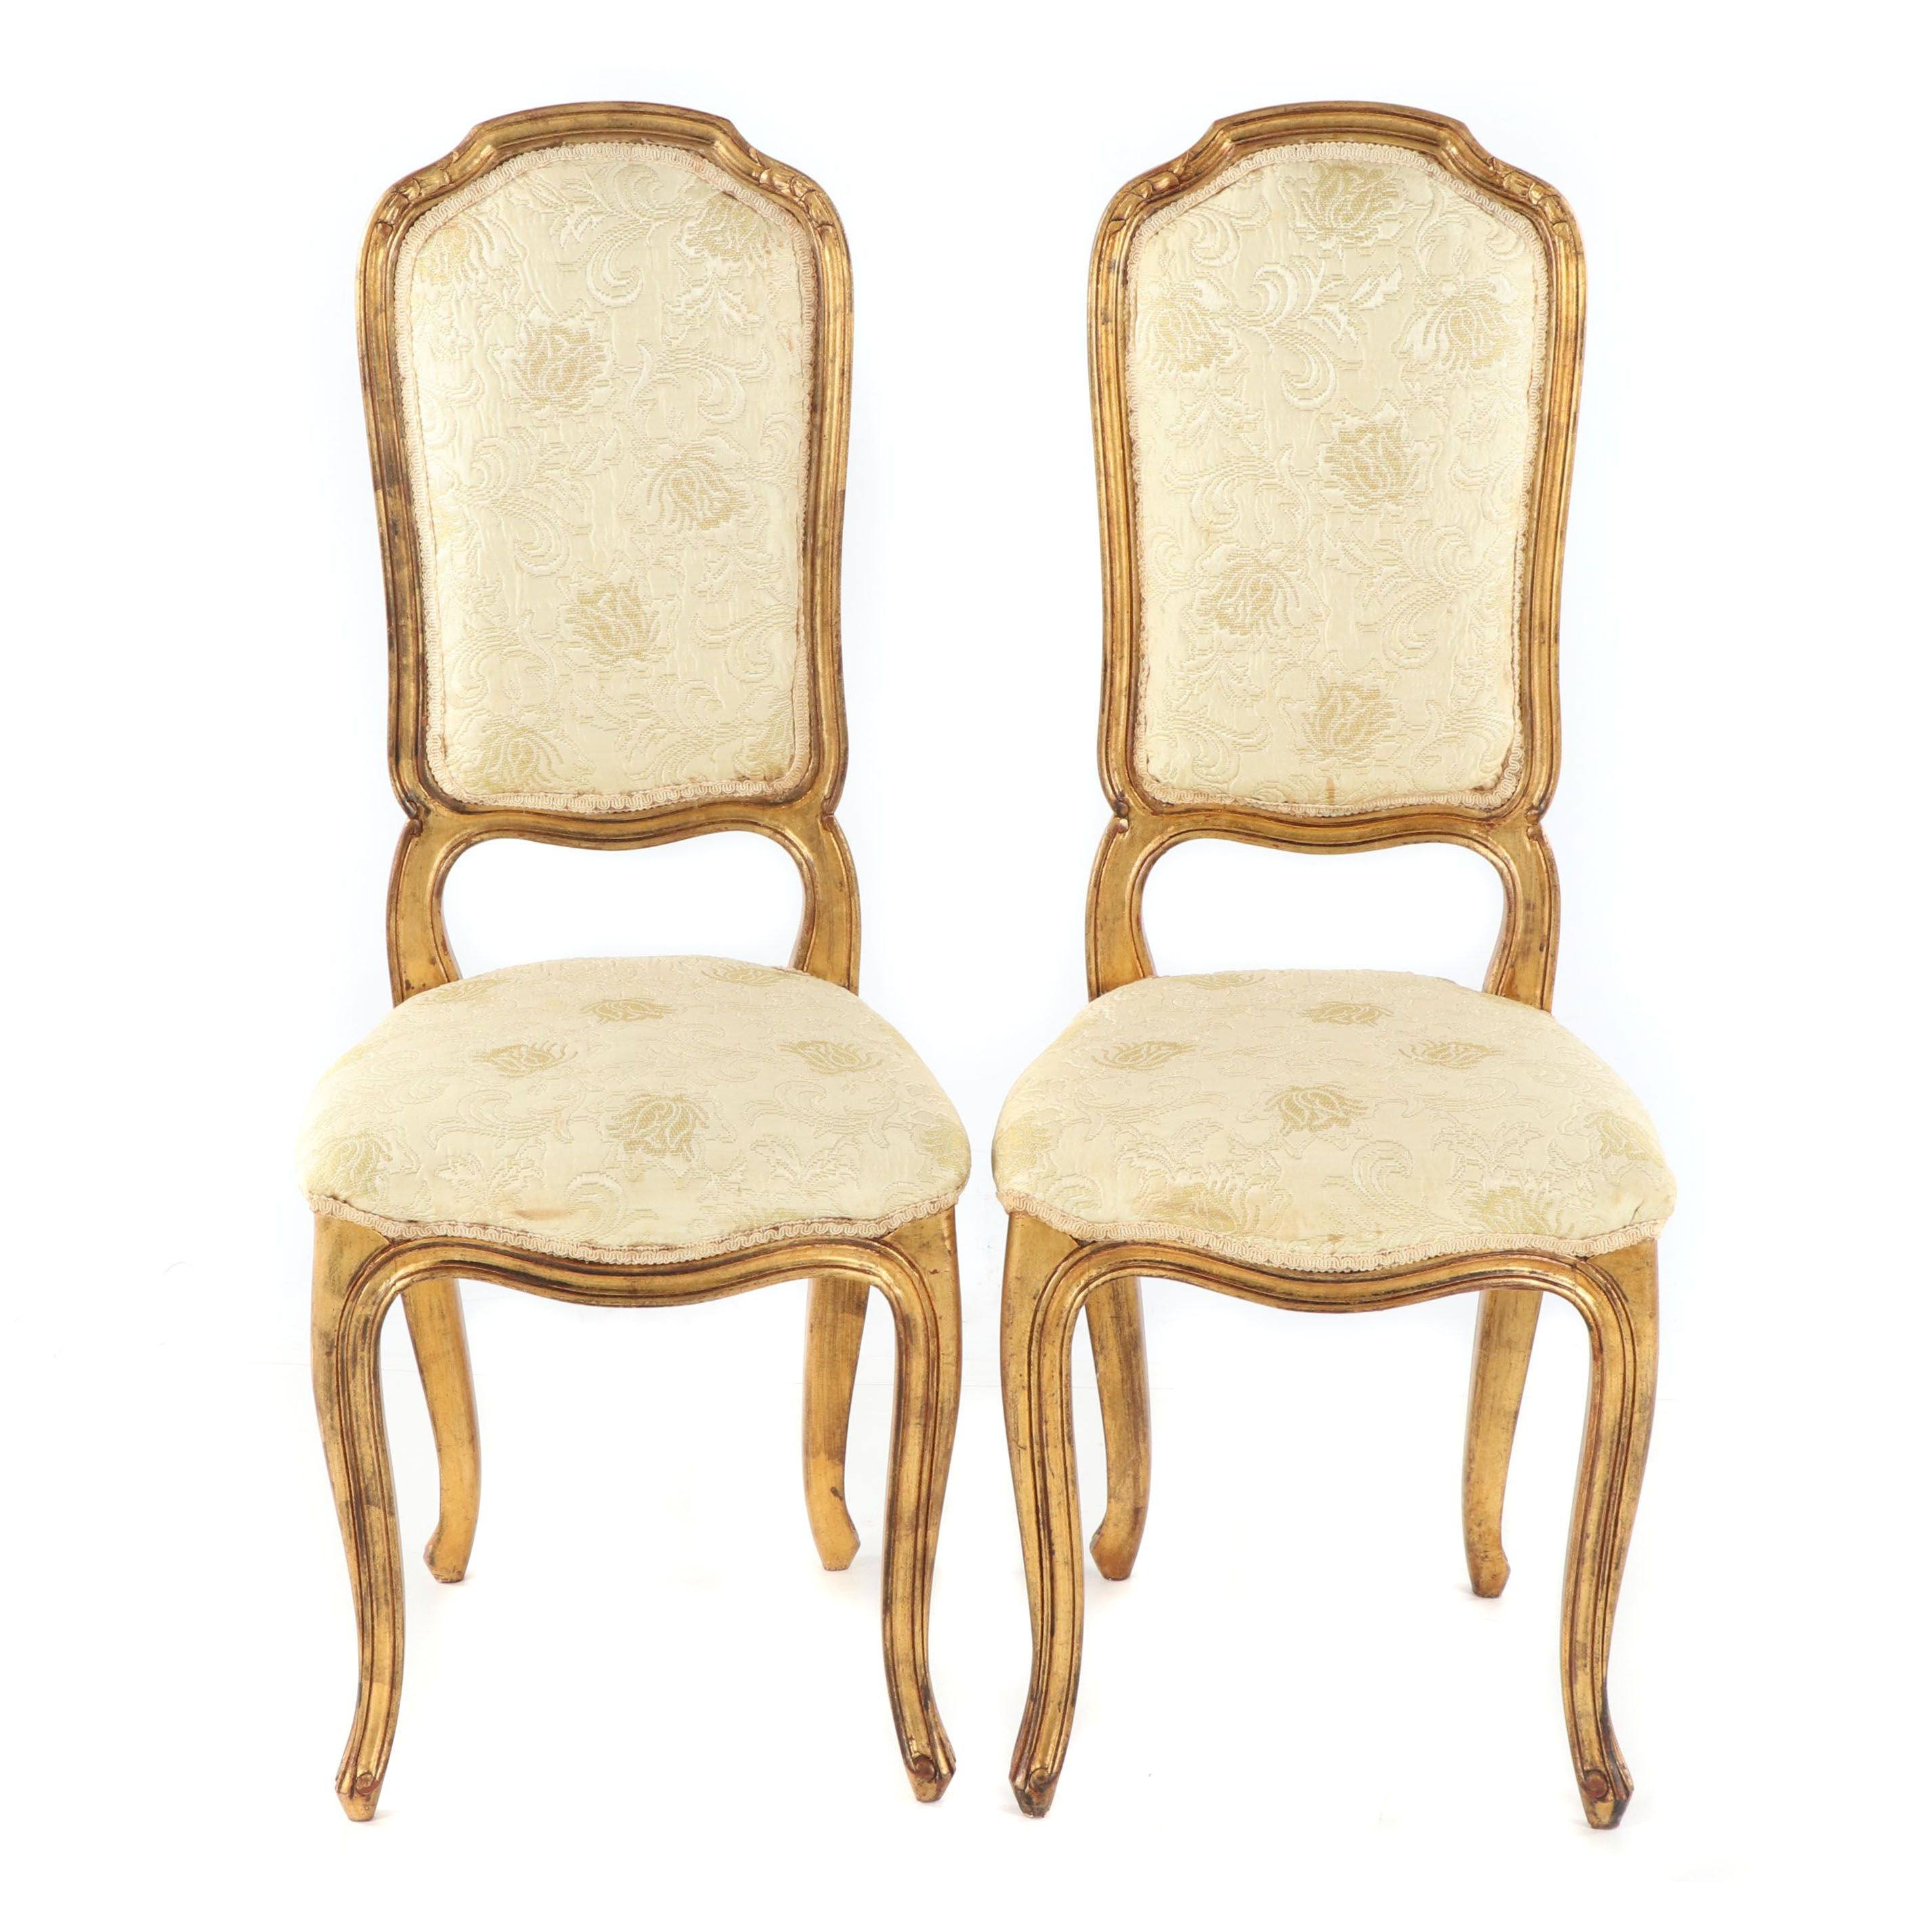 French Provincial Style Painted Wood Frame Upholstered Side Chairs, Late 20th C.